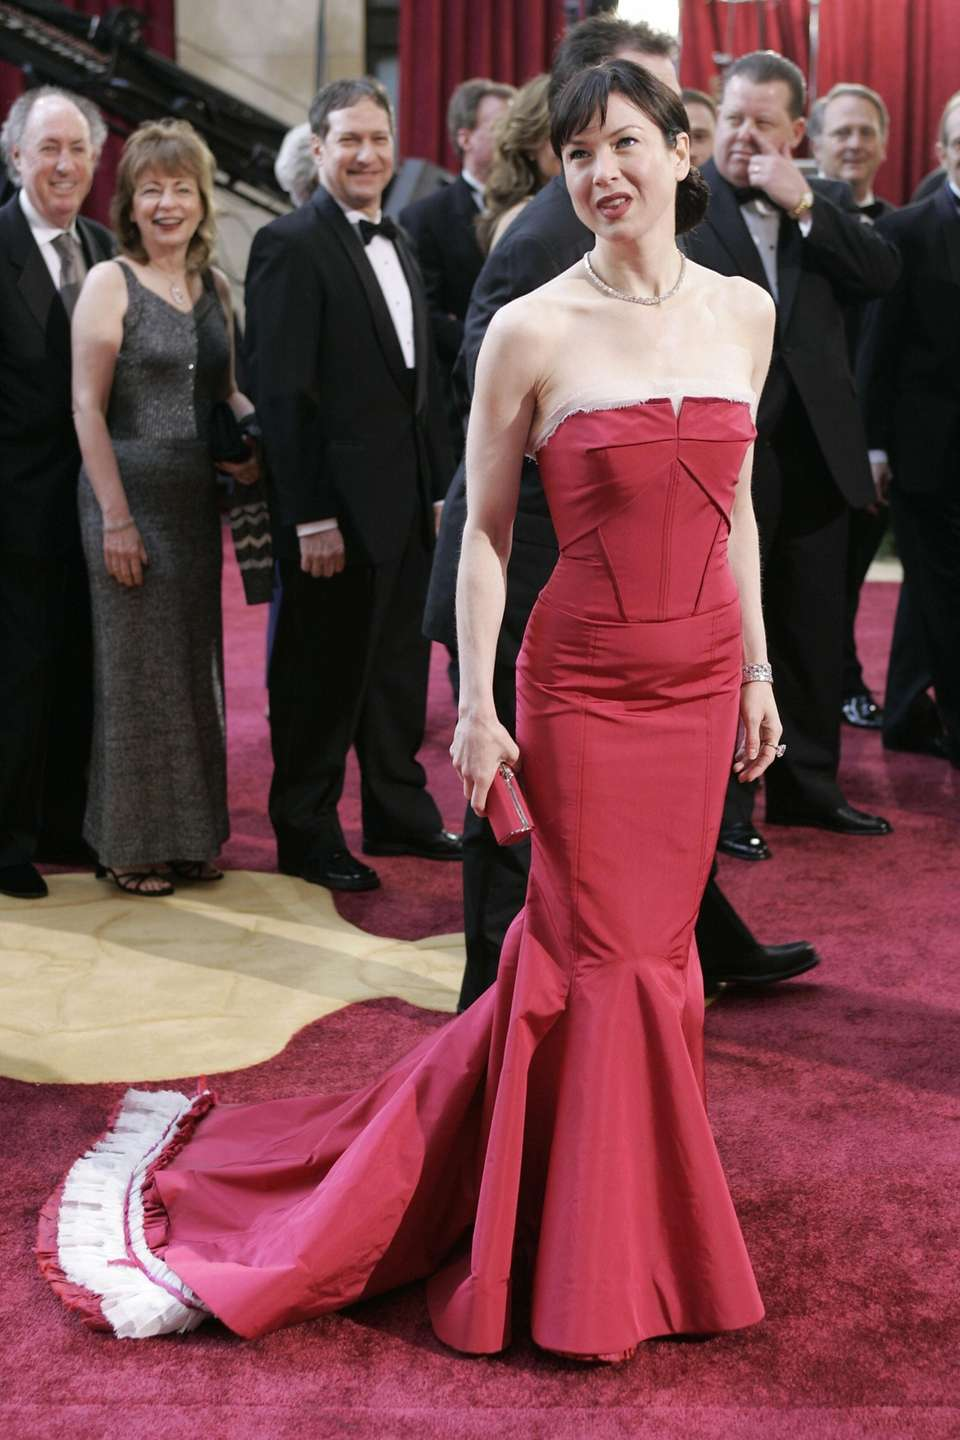 Renee Zellweger arrives at the 77th Academy Awards